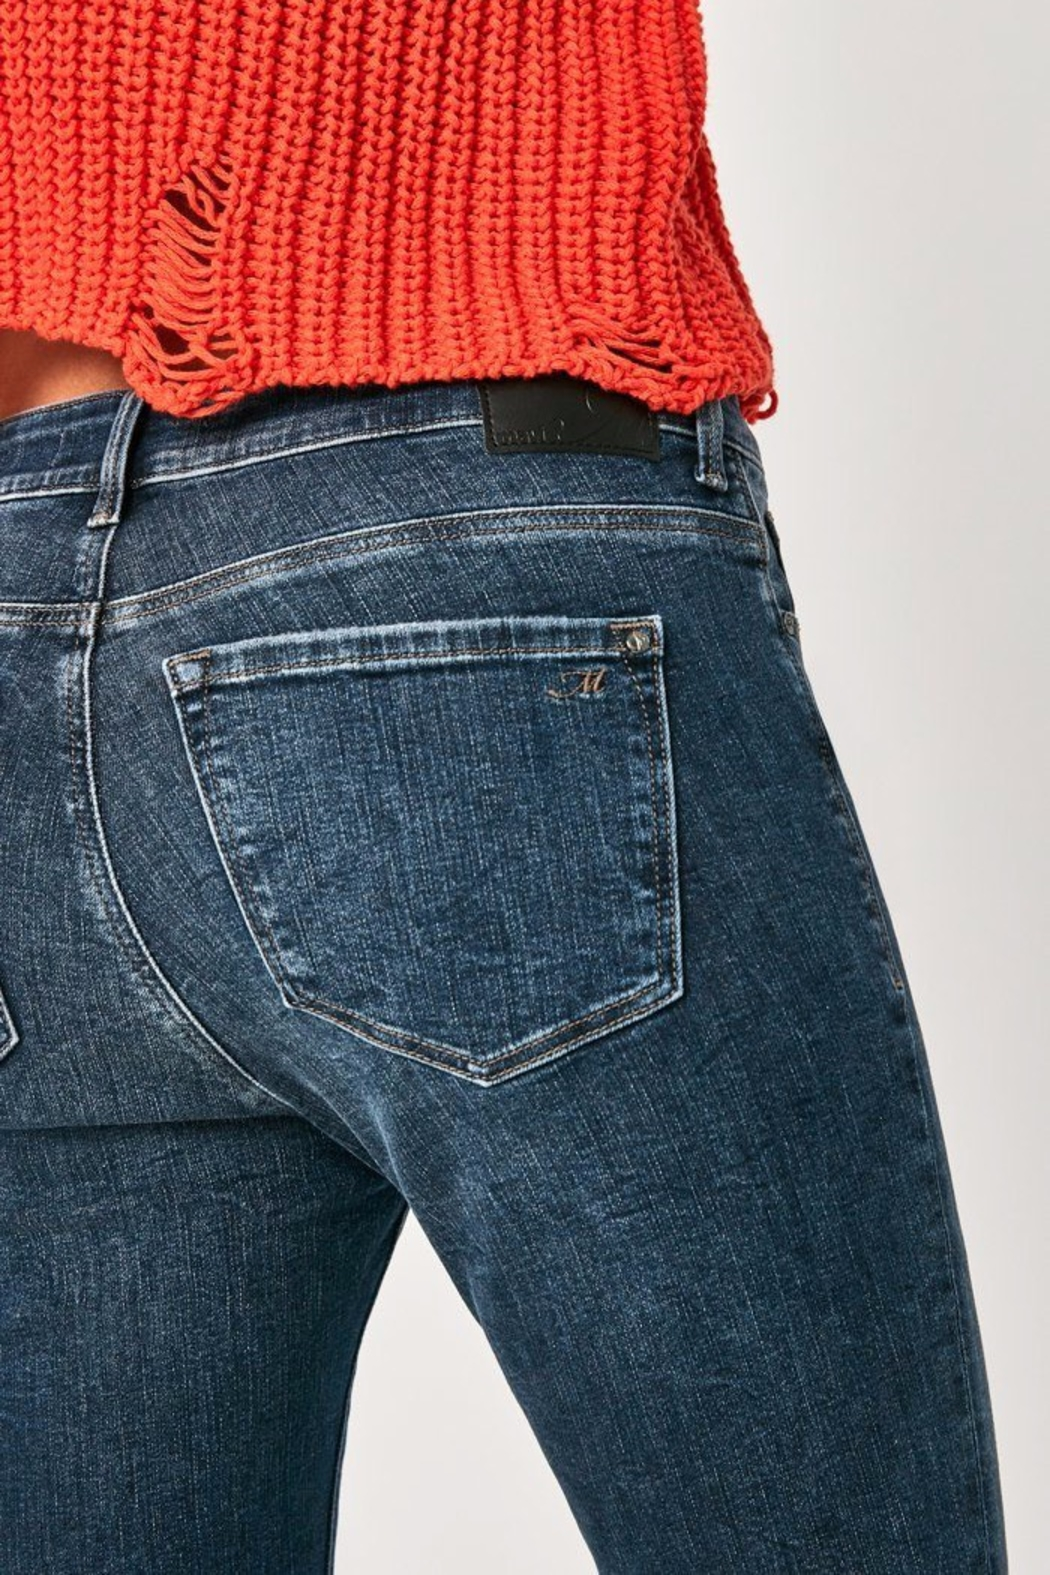 Mavi Jeans High Rise Cropped Jean - Back Cropped Image